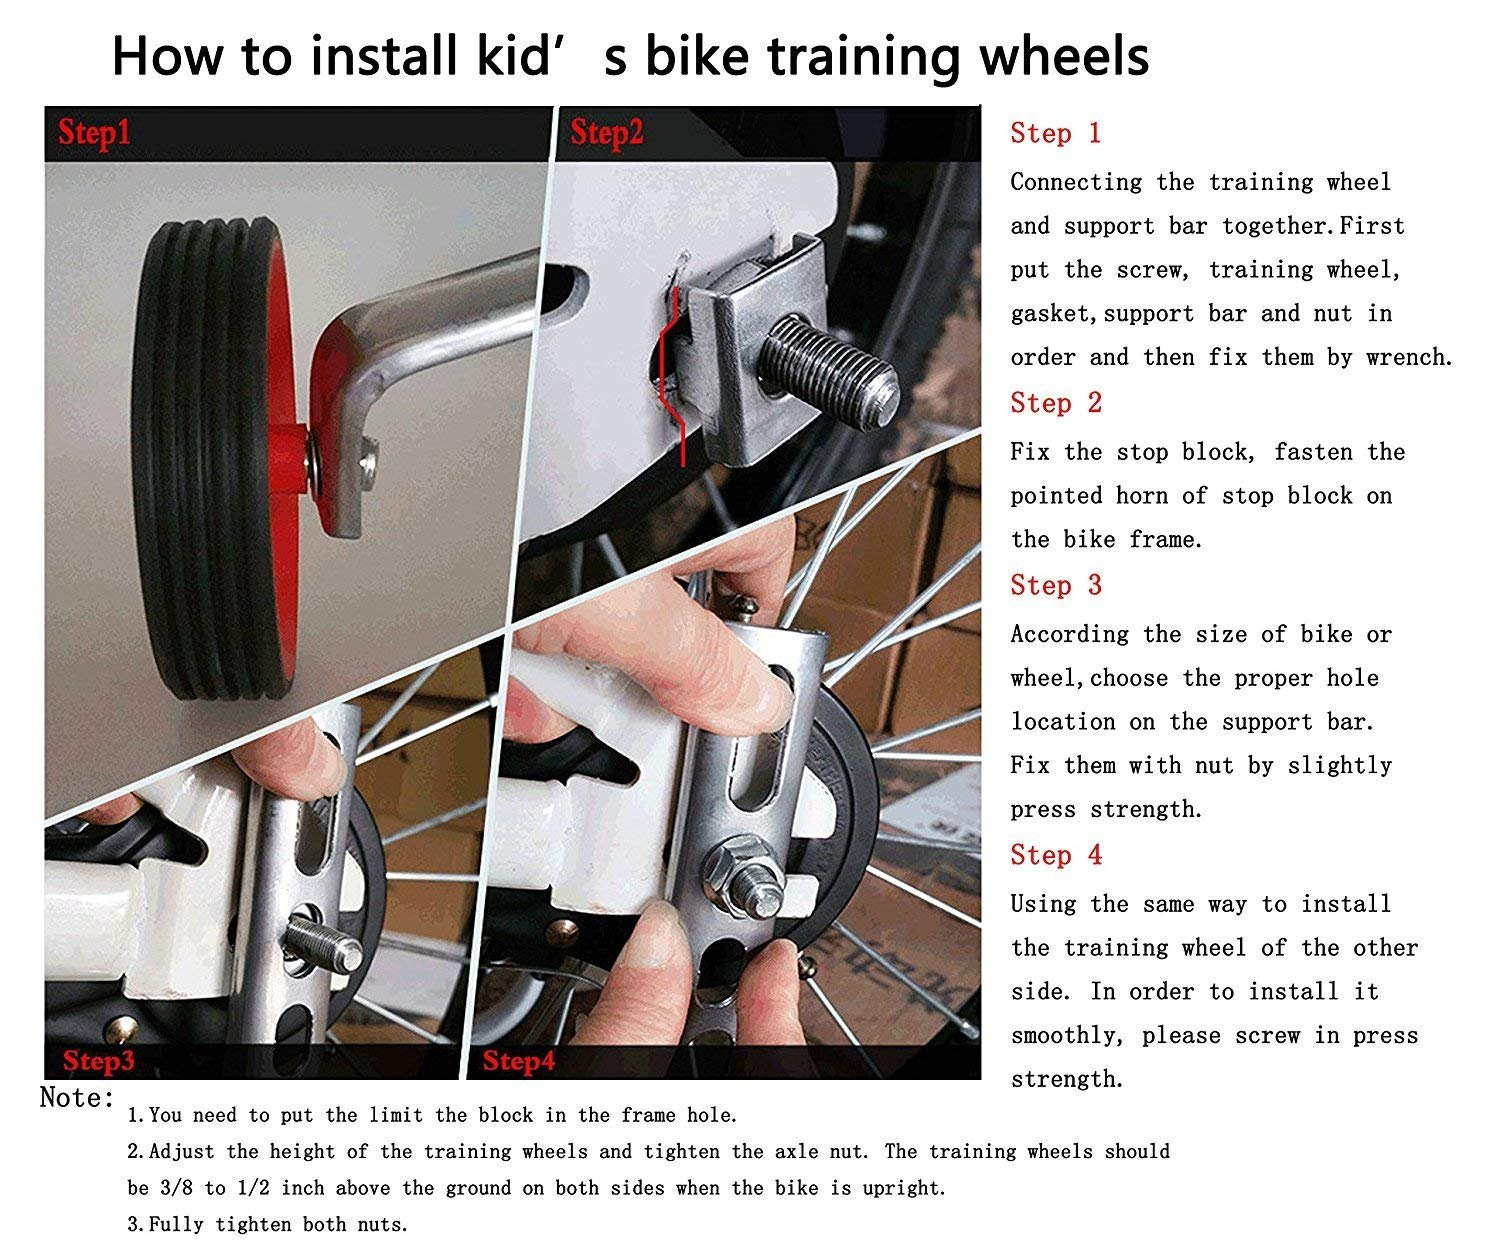 Gugou Children's Bicycle Training Wheels 12-20Inch Universal Kids Bike Stabiliser by Gugou (Image #3)